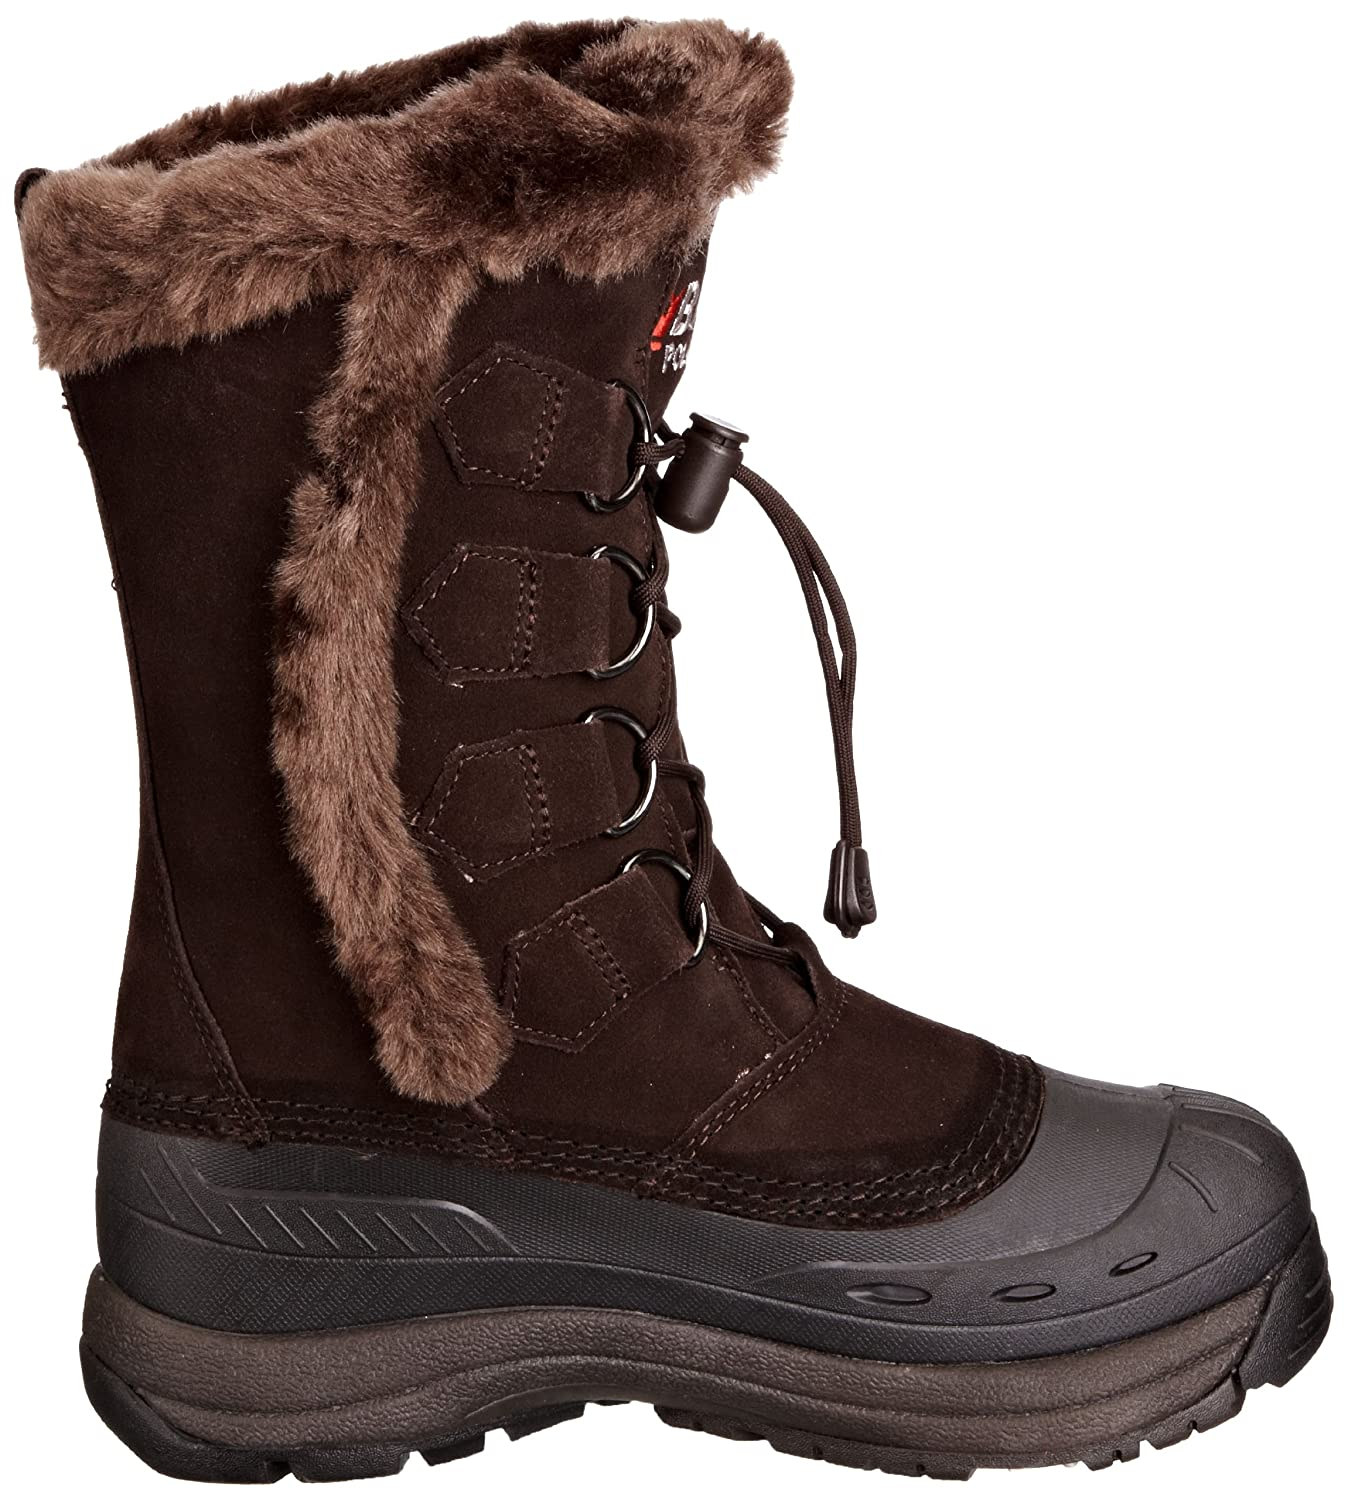 Baffin Women's Chloe Insulated Boot B001E5CQIE 9 B(M) US|Dark Chocolate